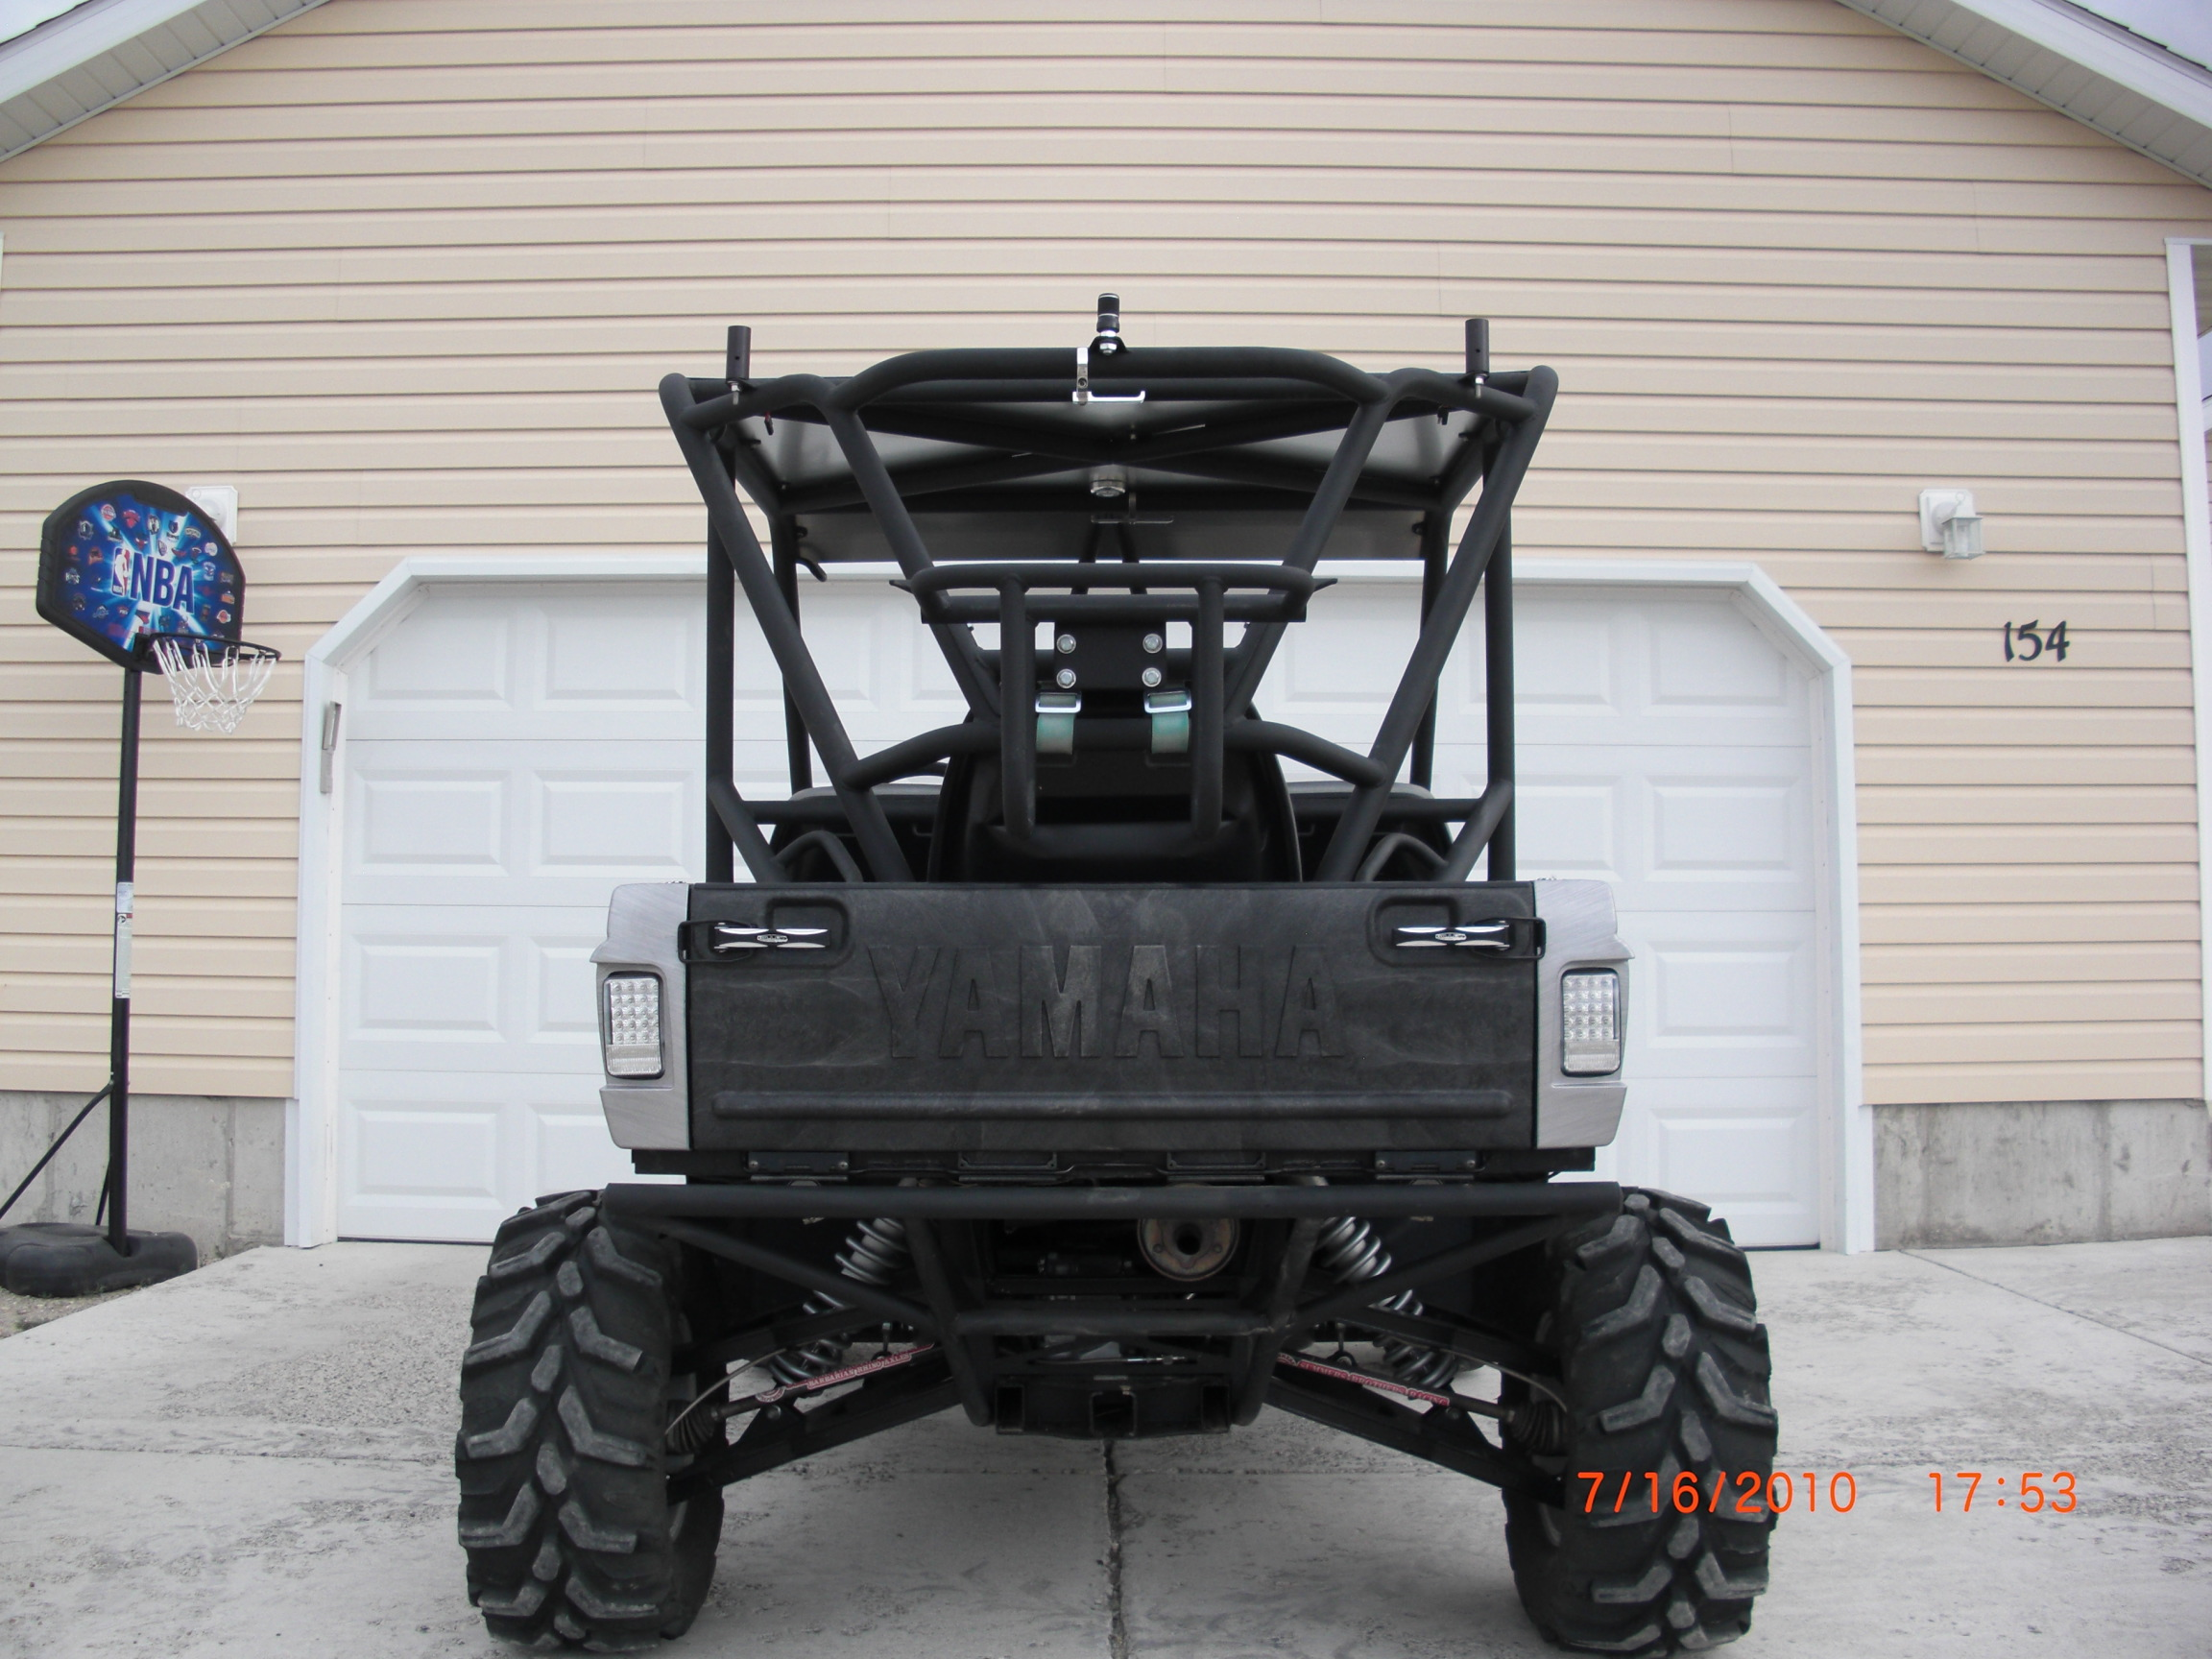 2008 Yamaha Rhino 700 For Sale Side X Sides Dumont Dune Fuel Filter Location Post 314 1279329252 Thumb